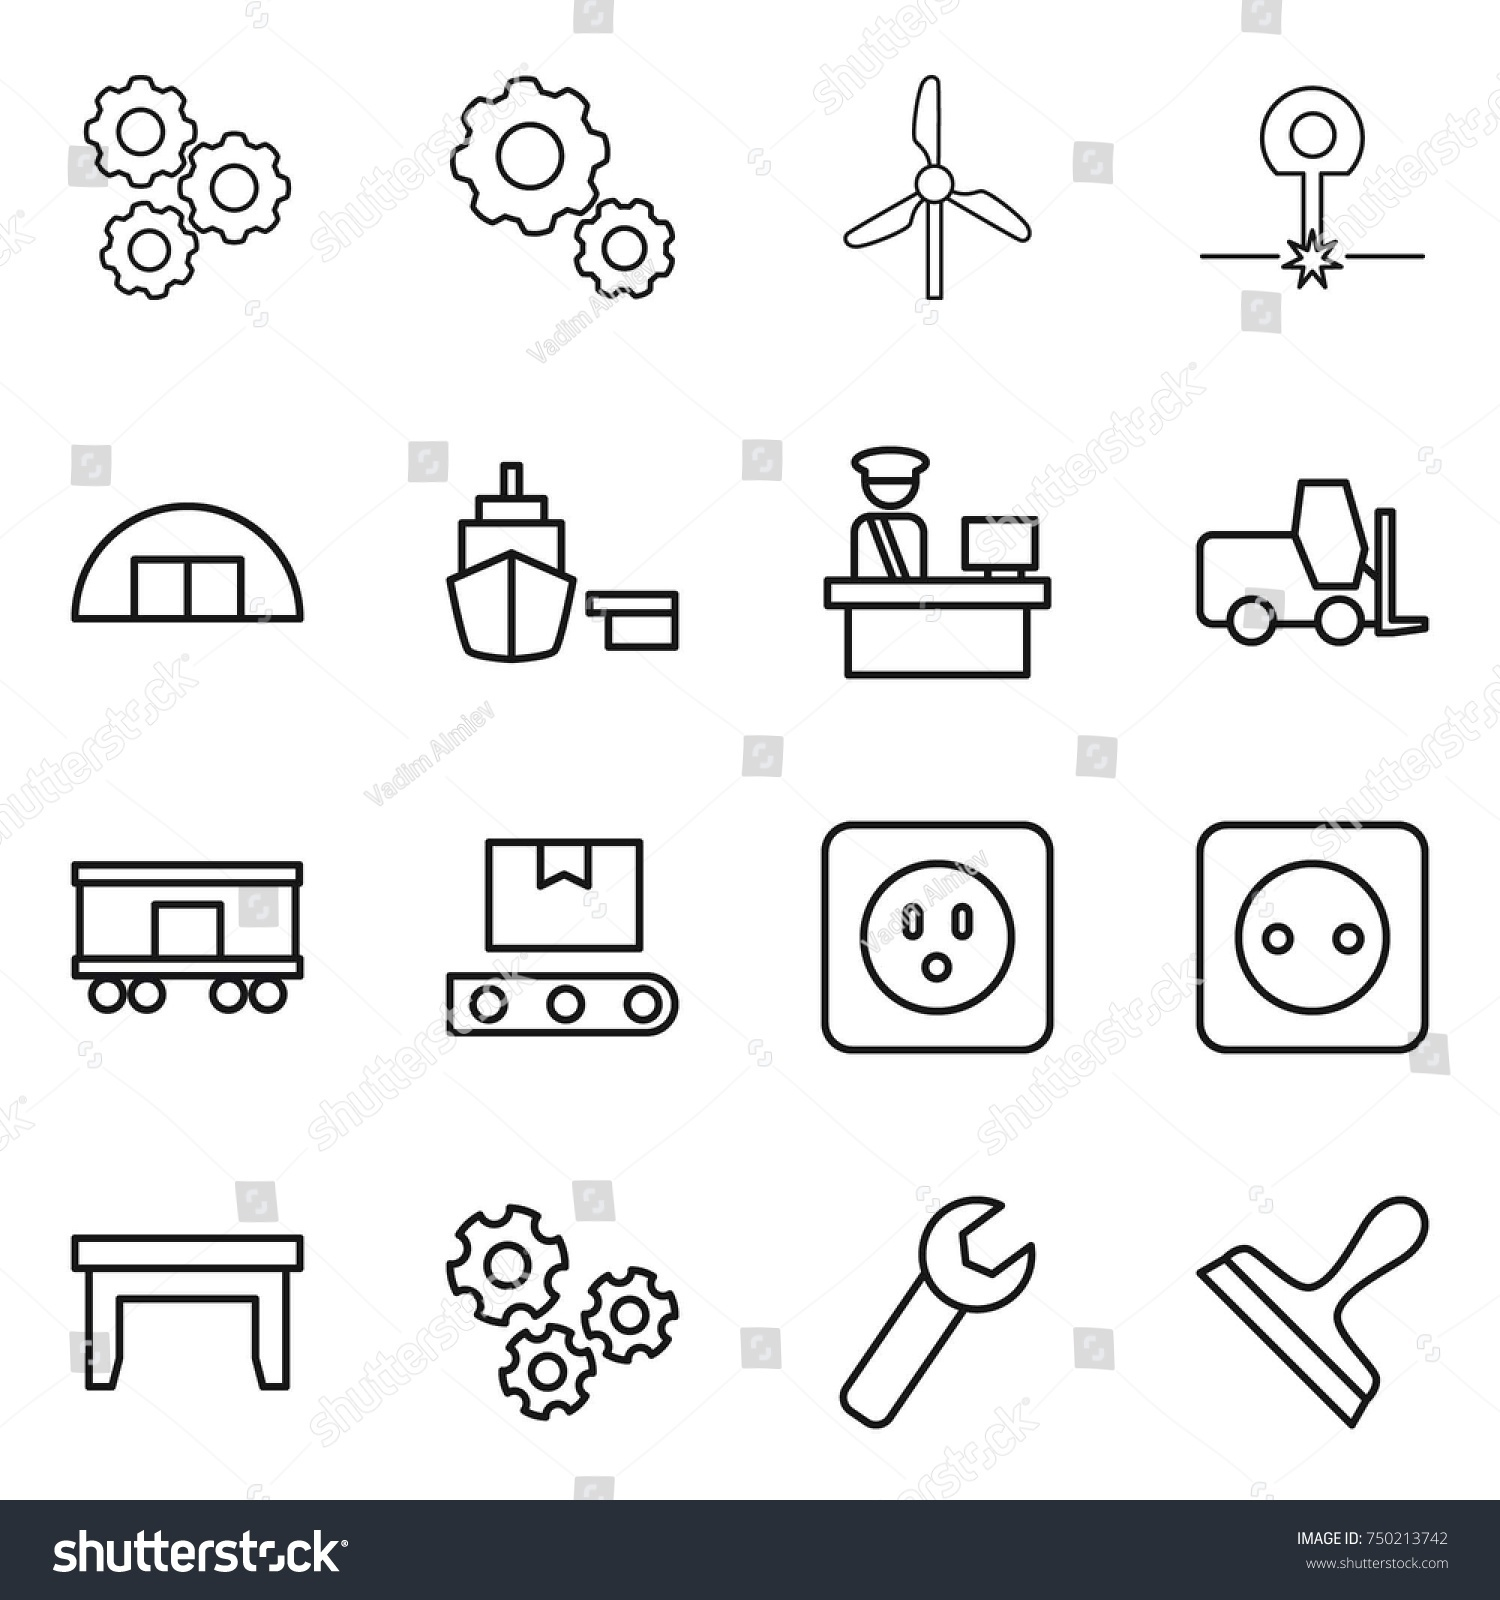 Thin line icon set gear windmill stock vector 750213742 shutterstock thin line icon set gear windmill laser hangar port customs pooptronica Gallery